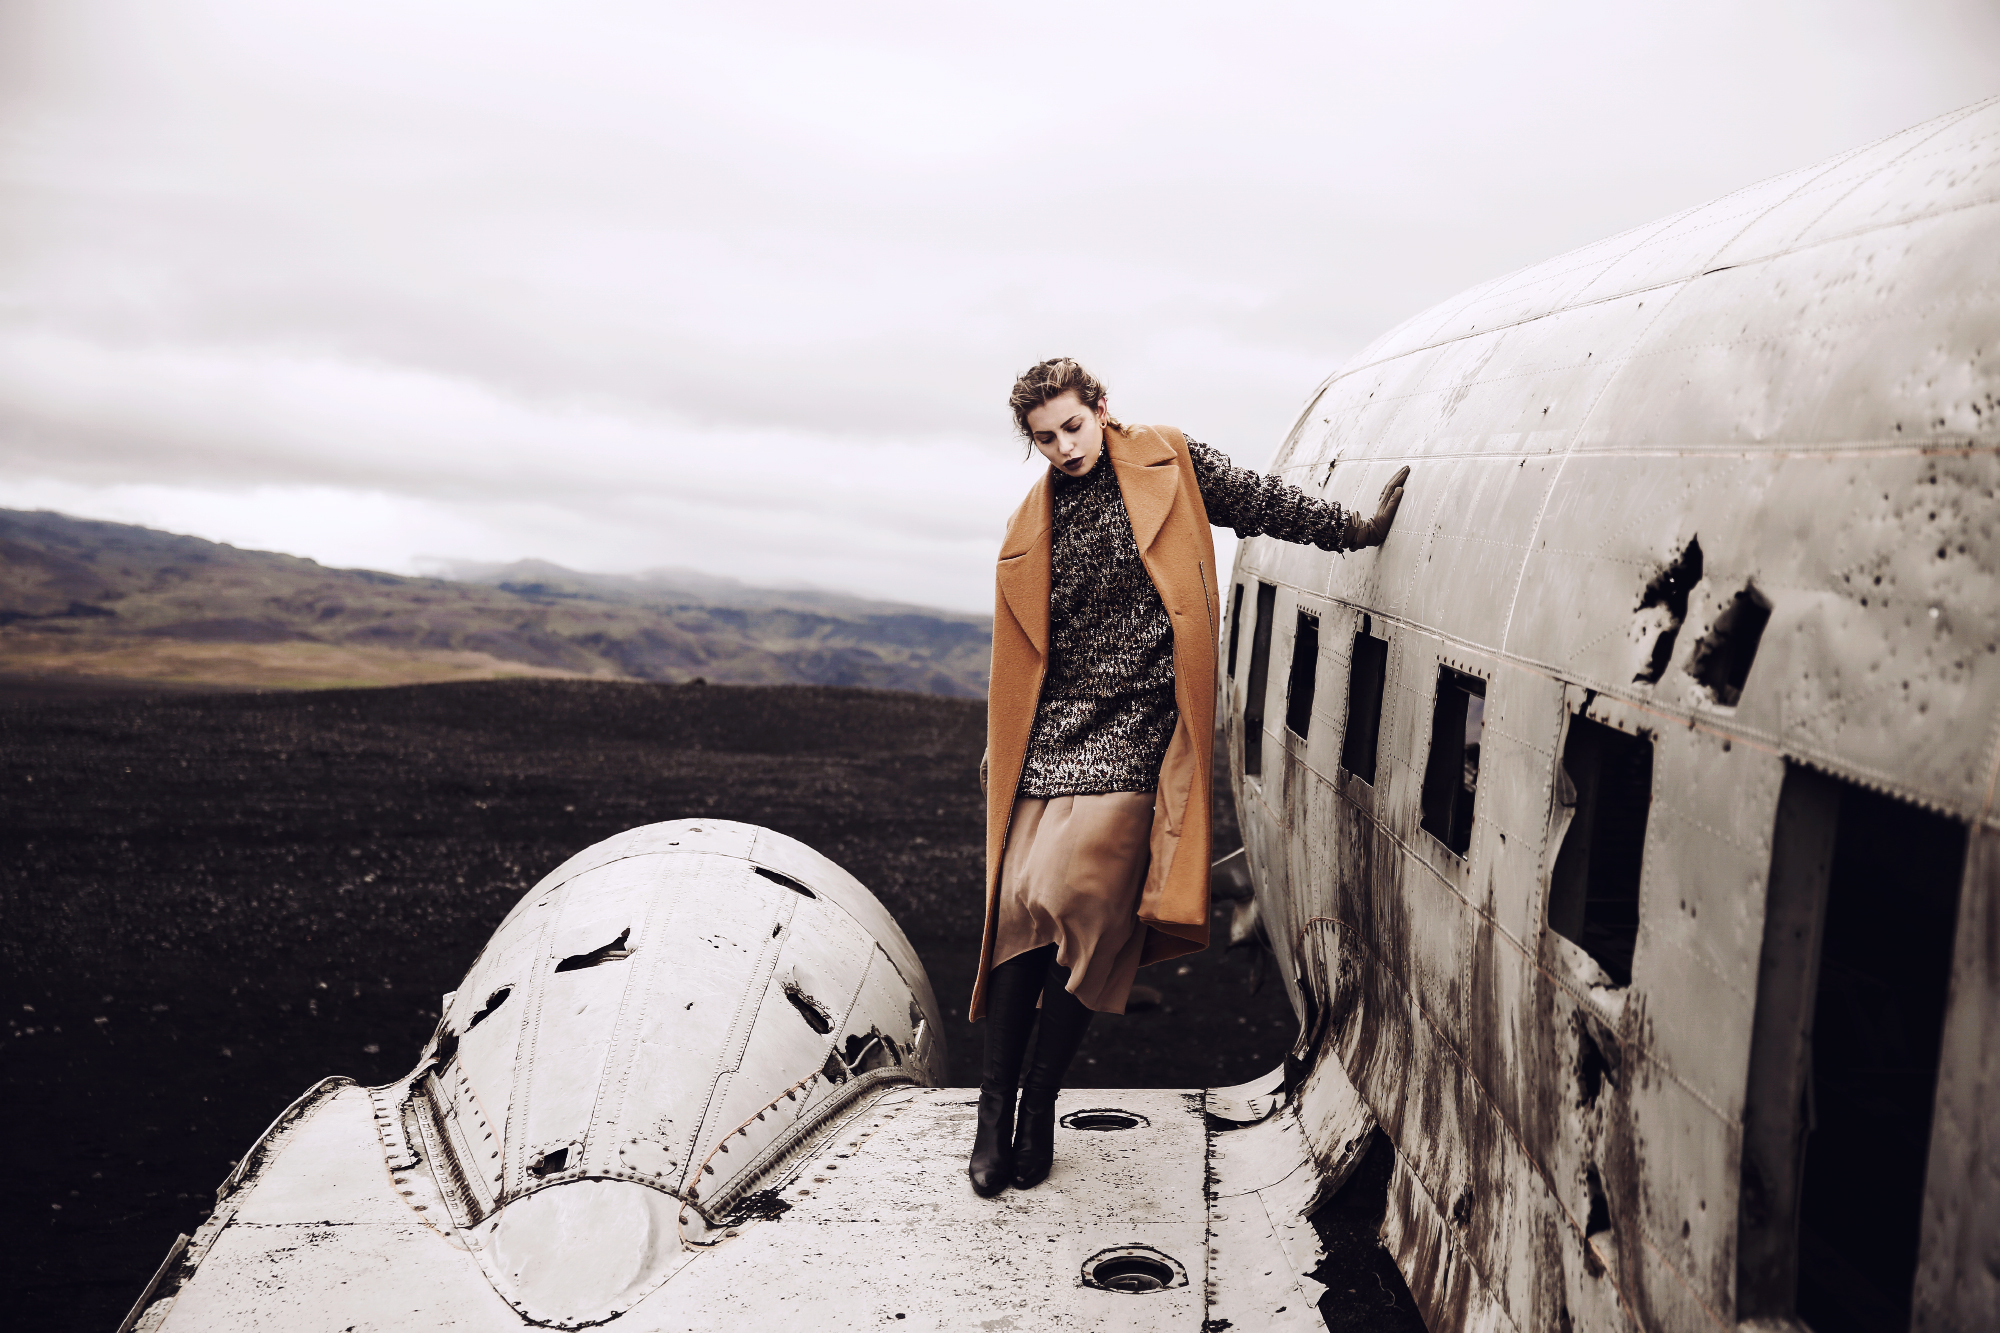 fashion editorial shoot in Iceland | plane crash |short story | style: glamorous, party, sequins, winter